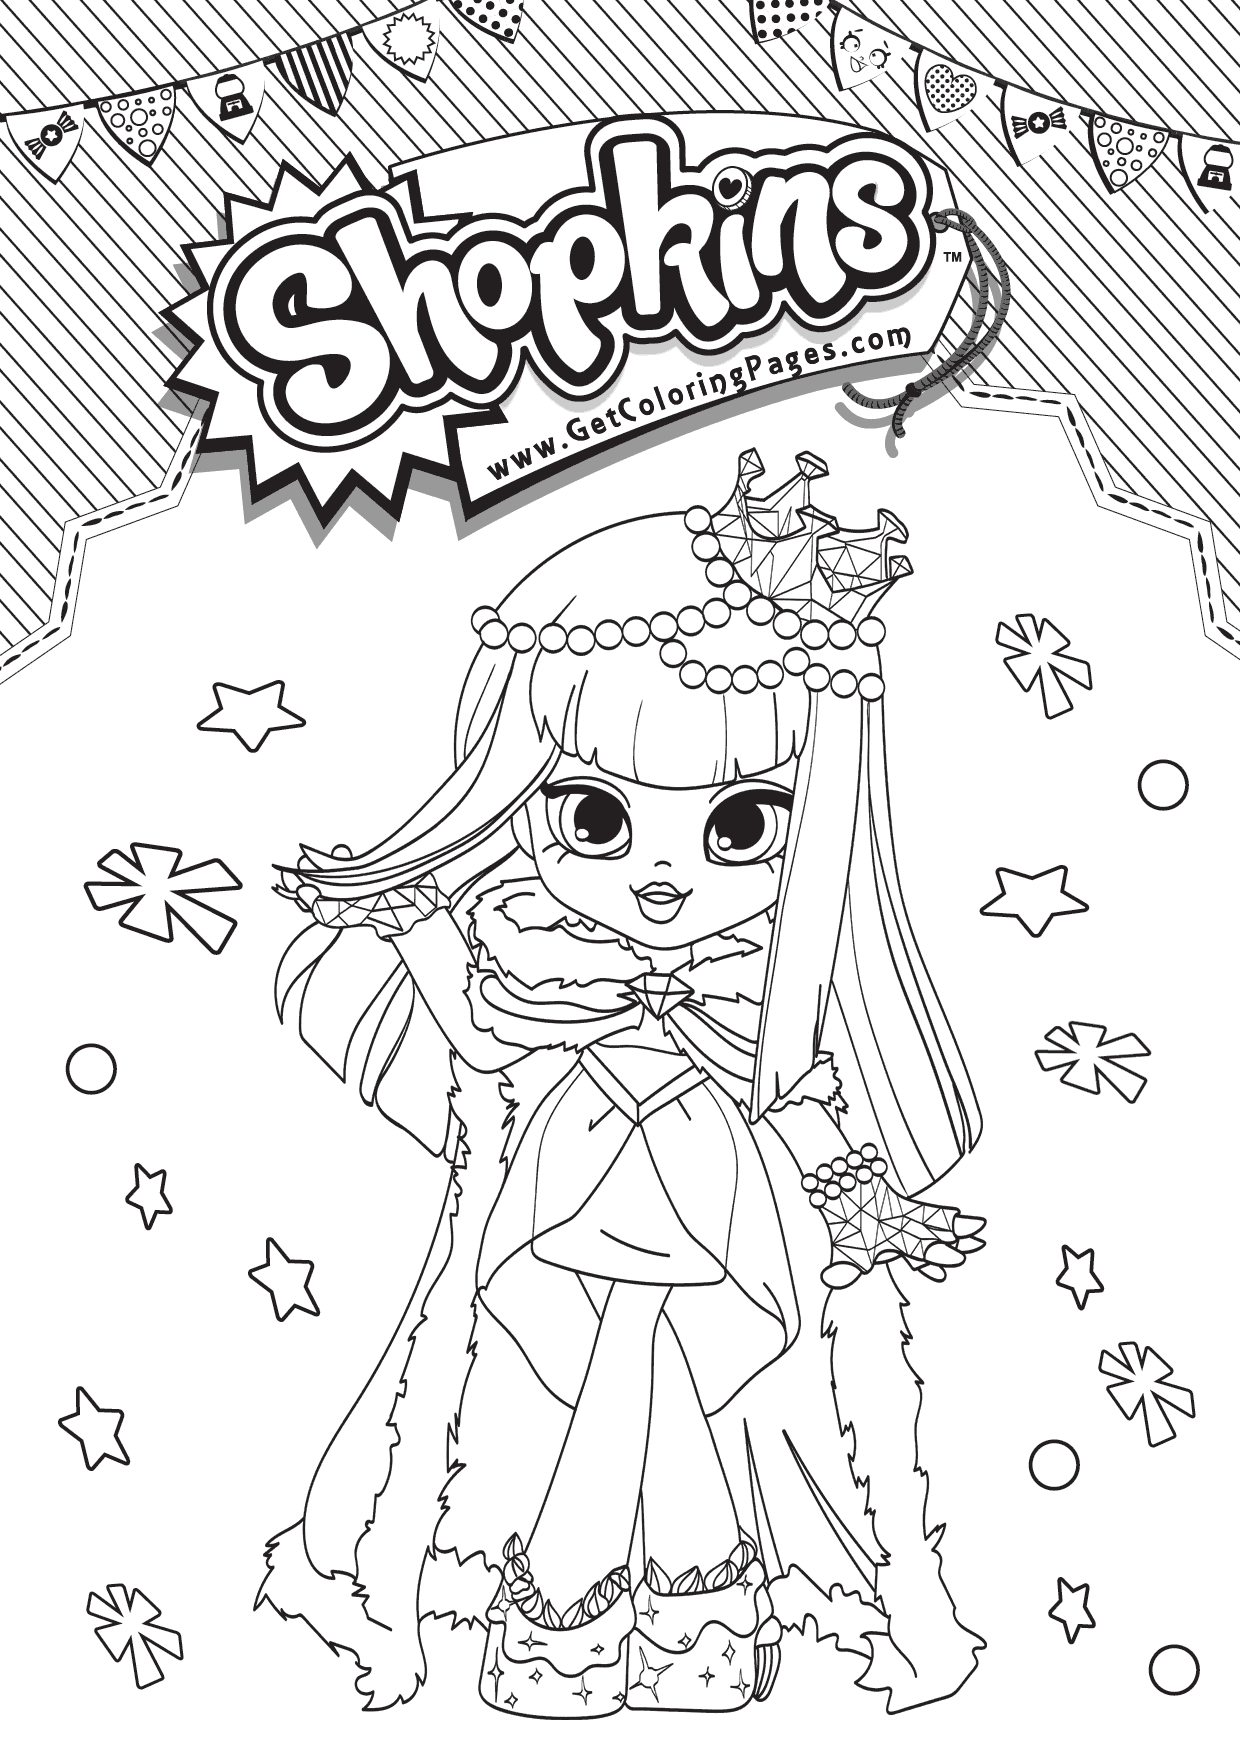 Free Shopkins Shoppies Coloring Pages Gemma Stone printable